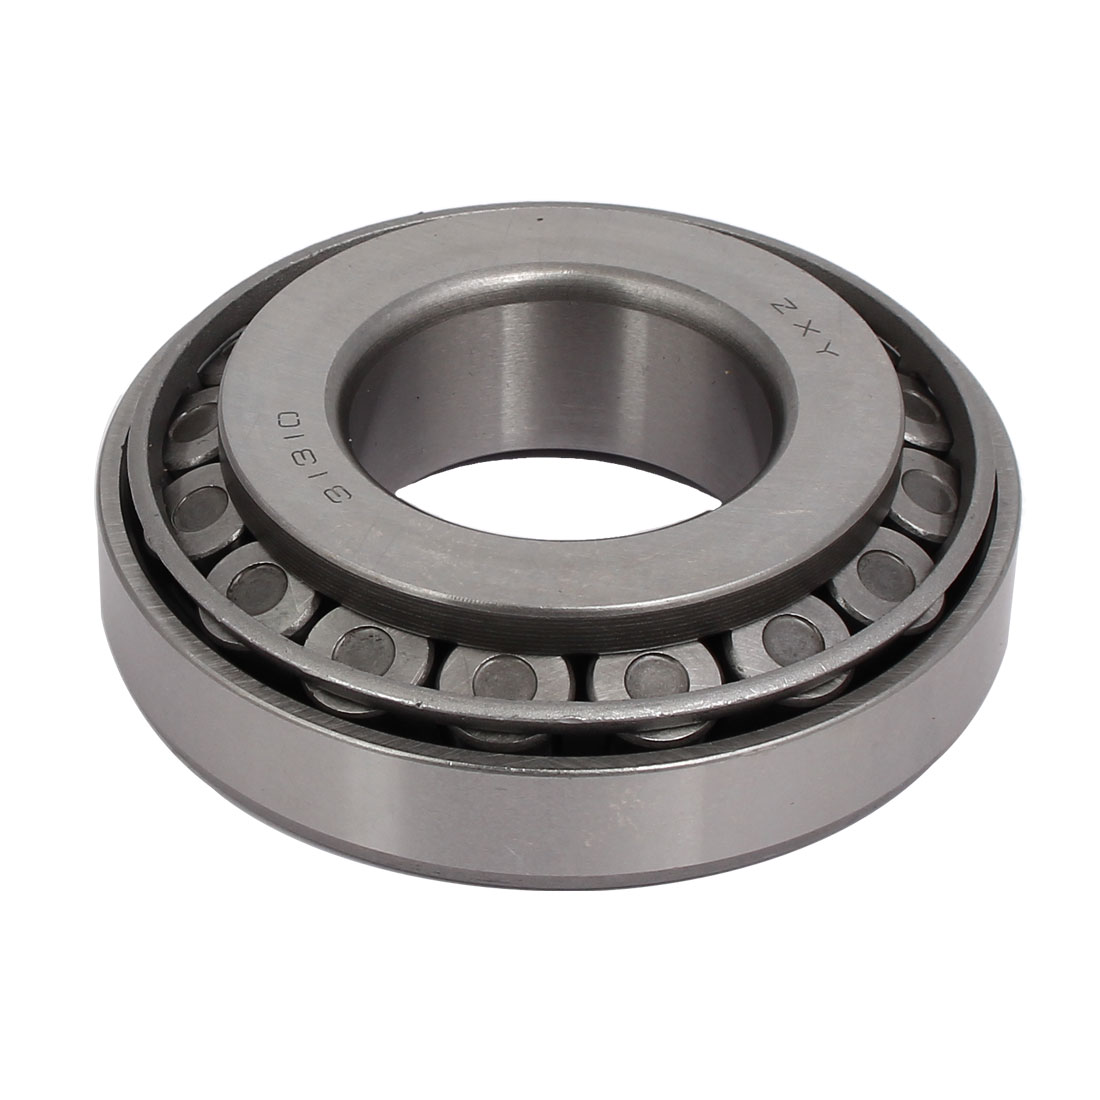 110mmx50mmx30mm 31310 Single Row Tapered Roller Bearing Silver Tone